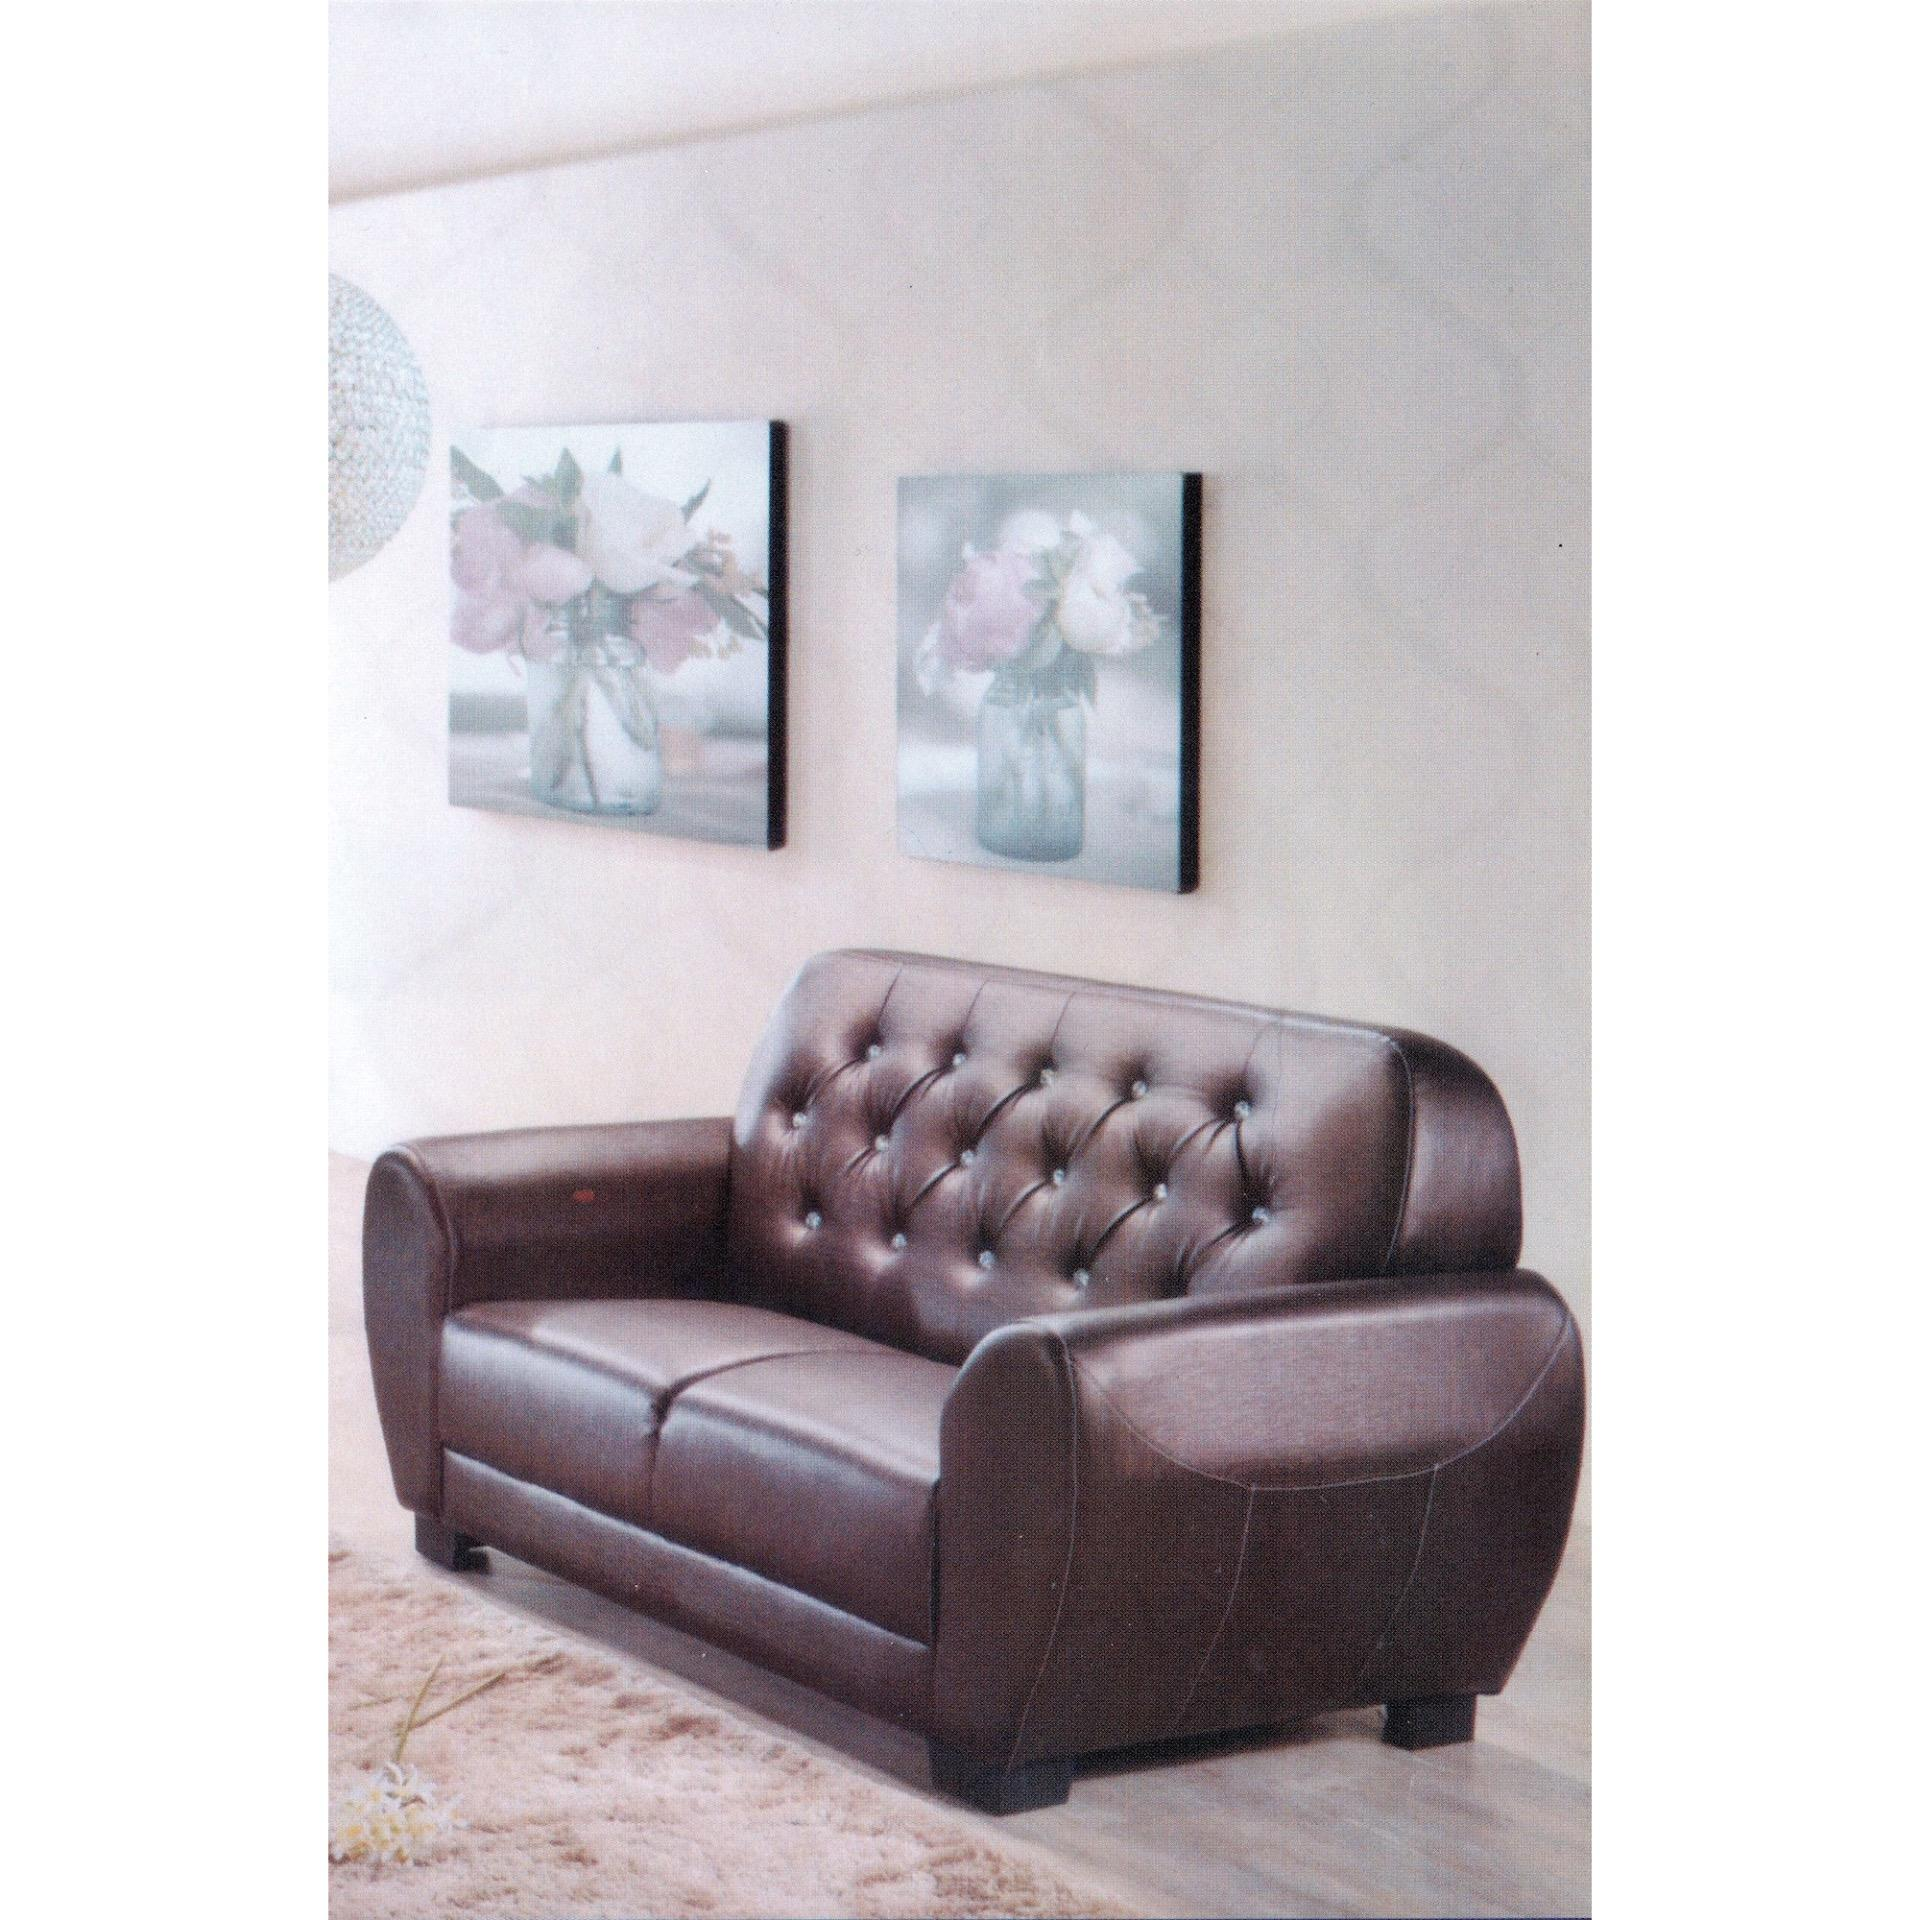 Sofa 2 Seater Fully Leather Sofa Lounge Chair Relax Sofa